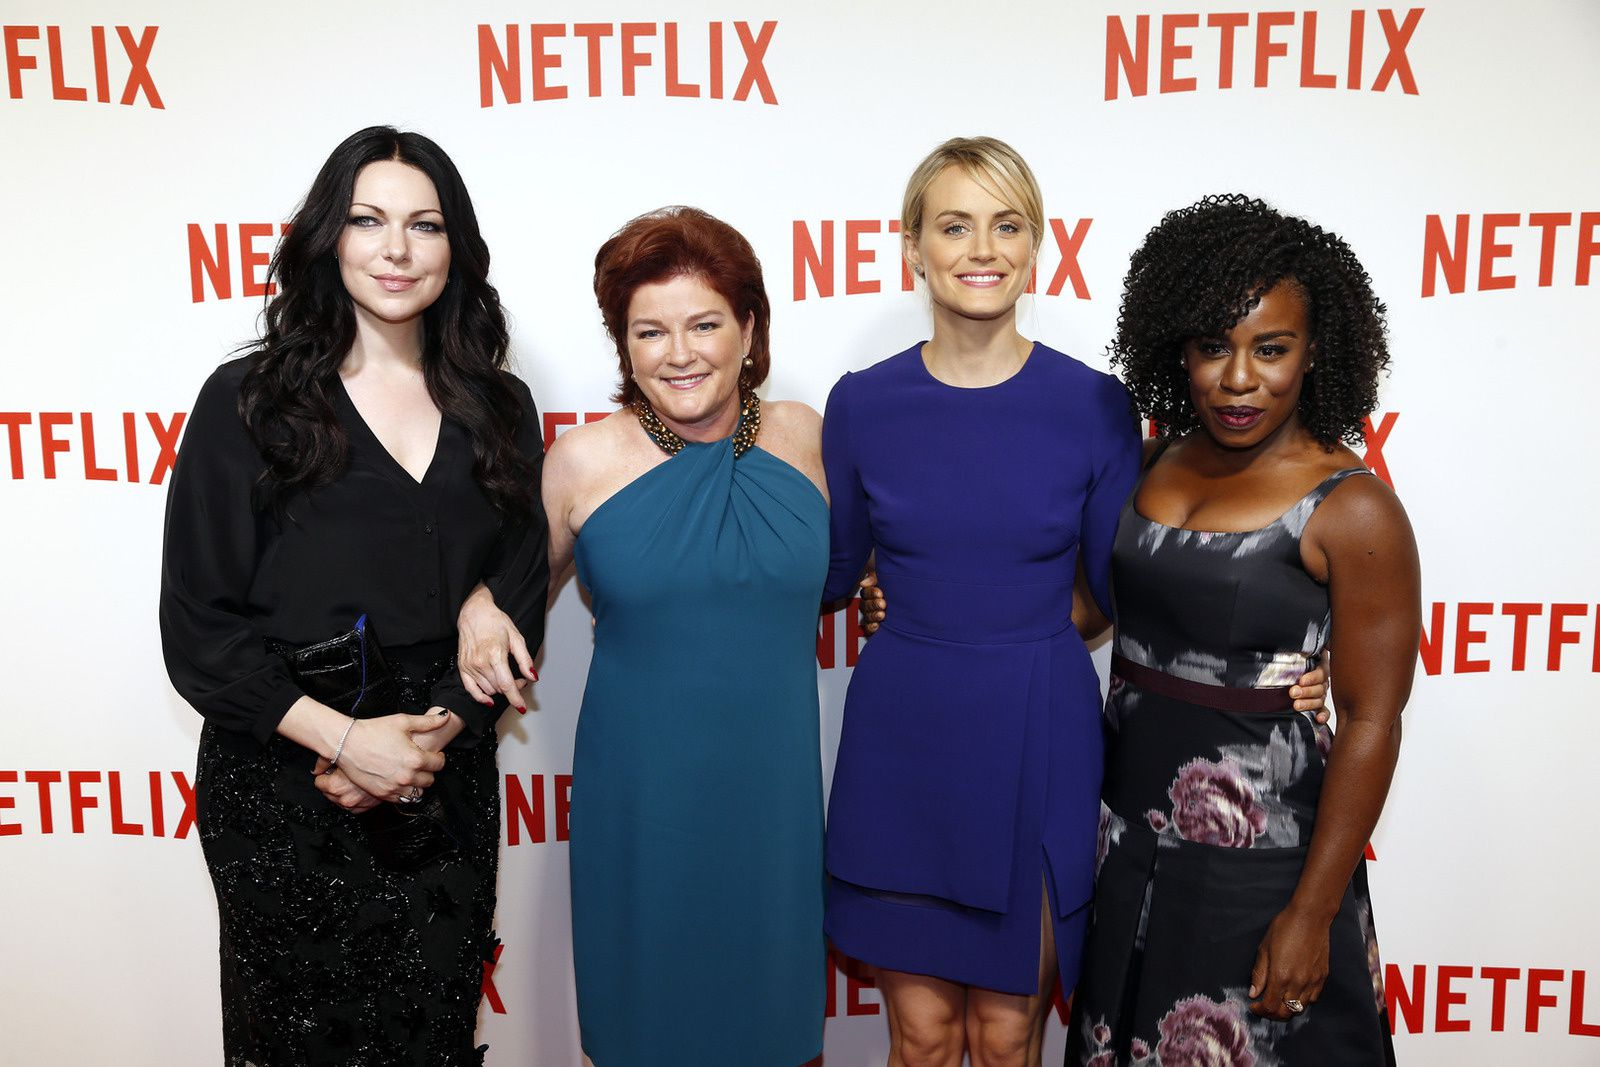 Orange is the New Black et Netflix en force !